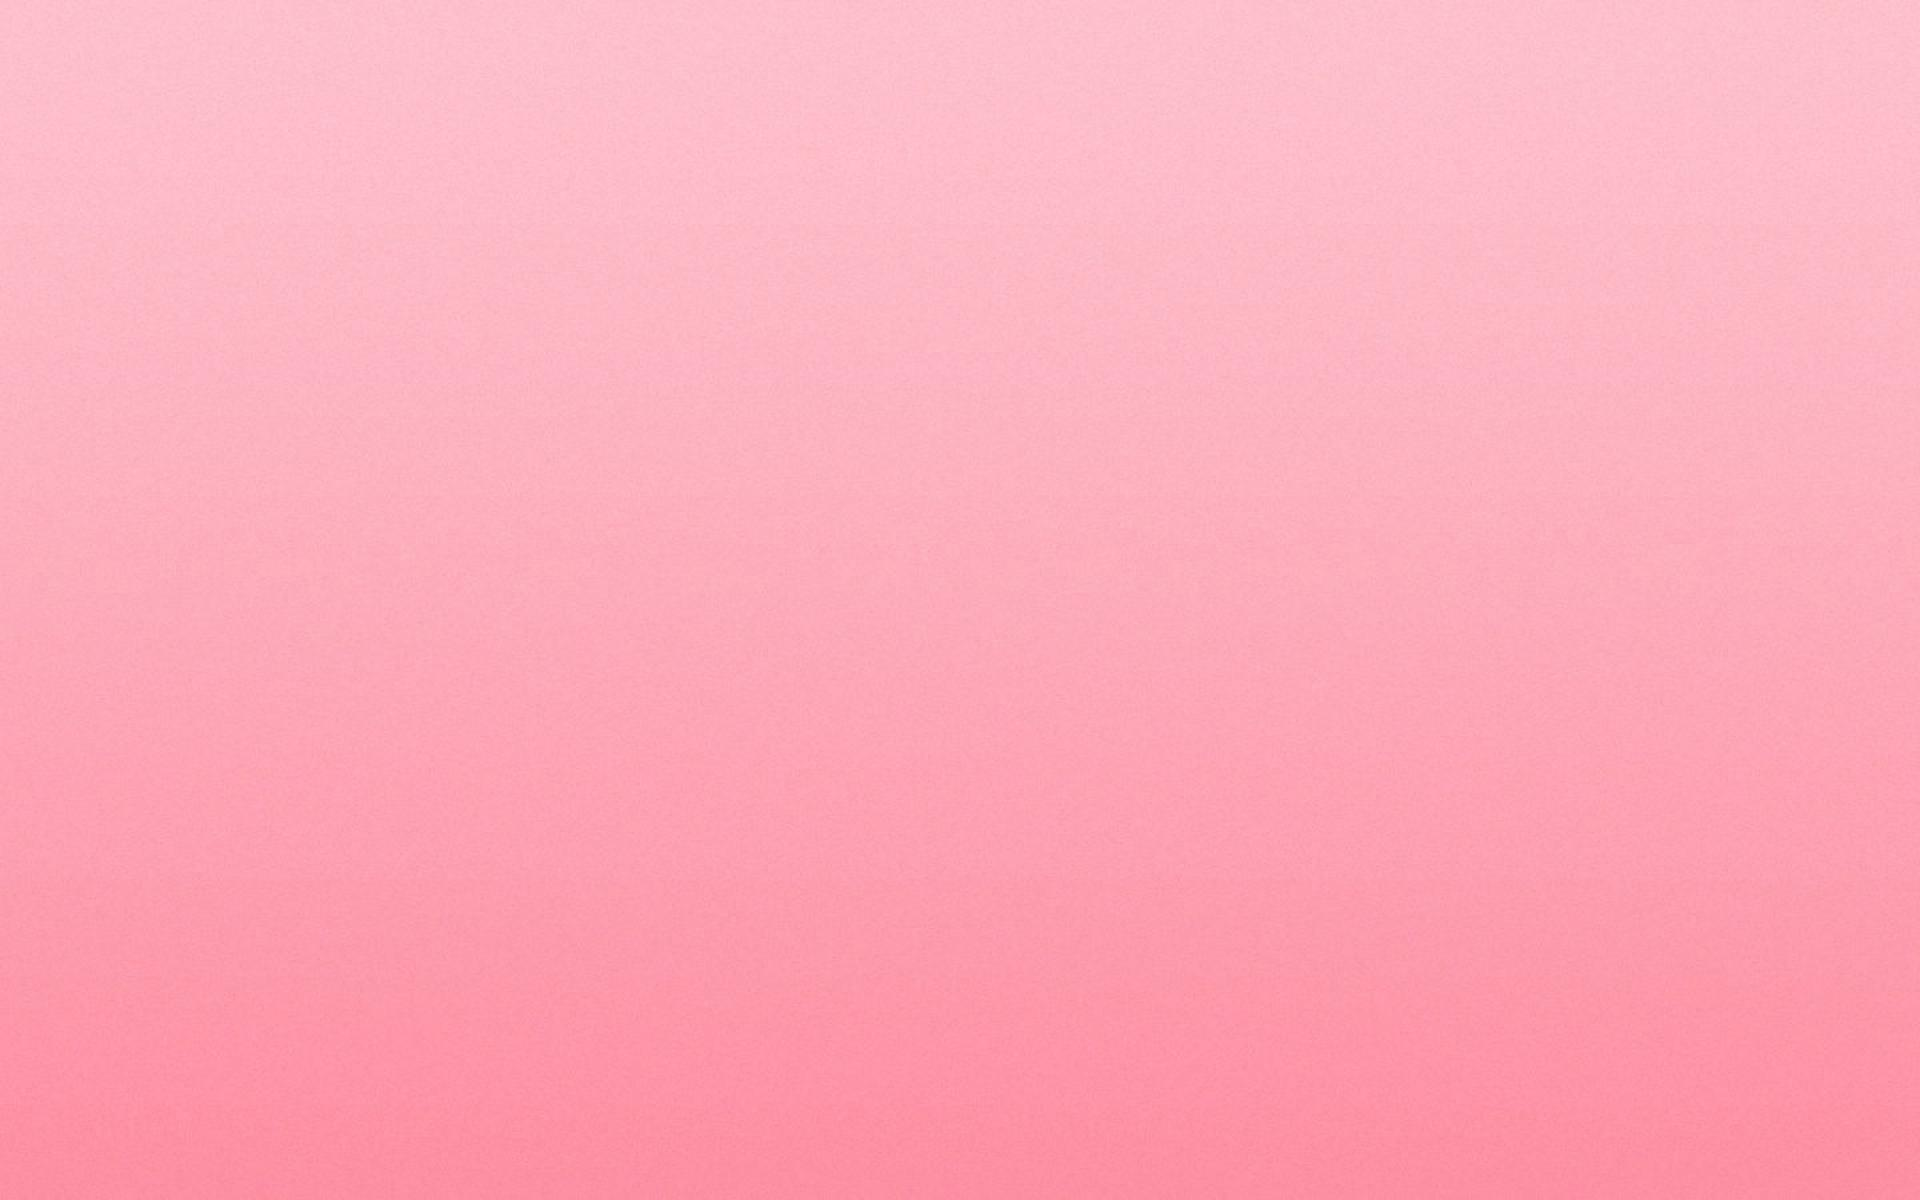 Android 3.0 Pink Wallpaper Wallpapers